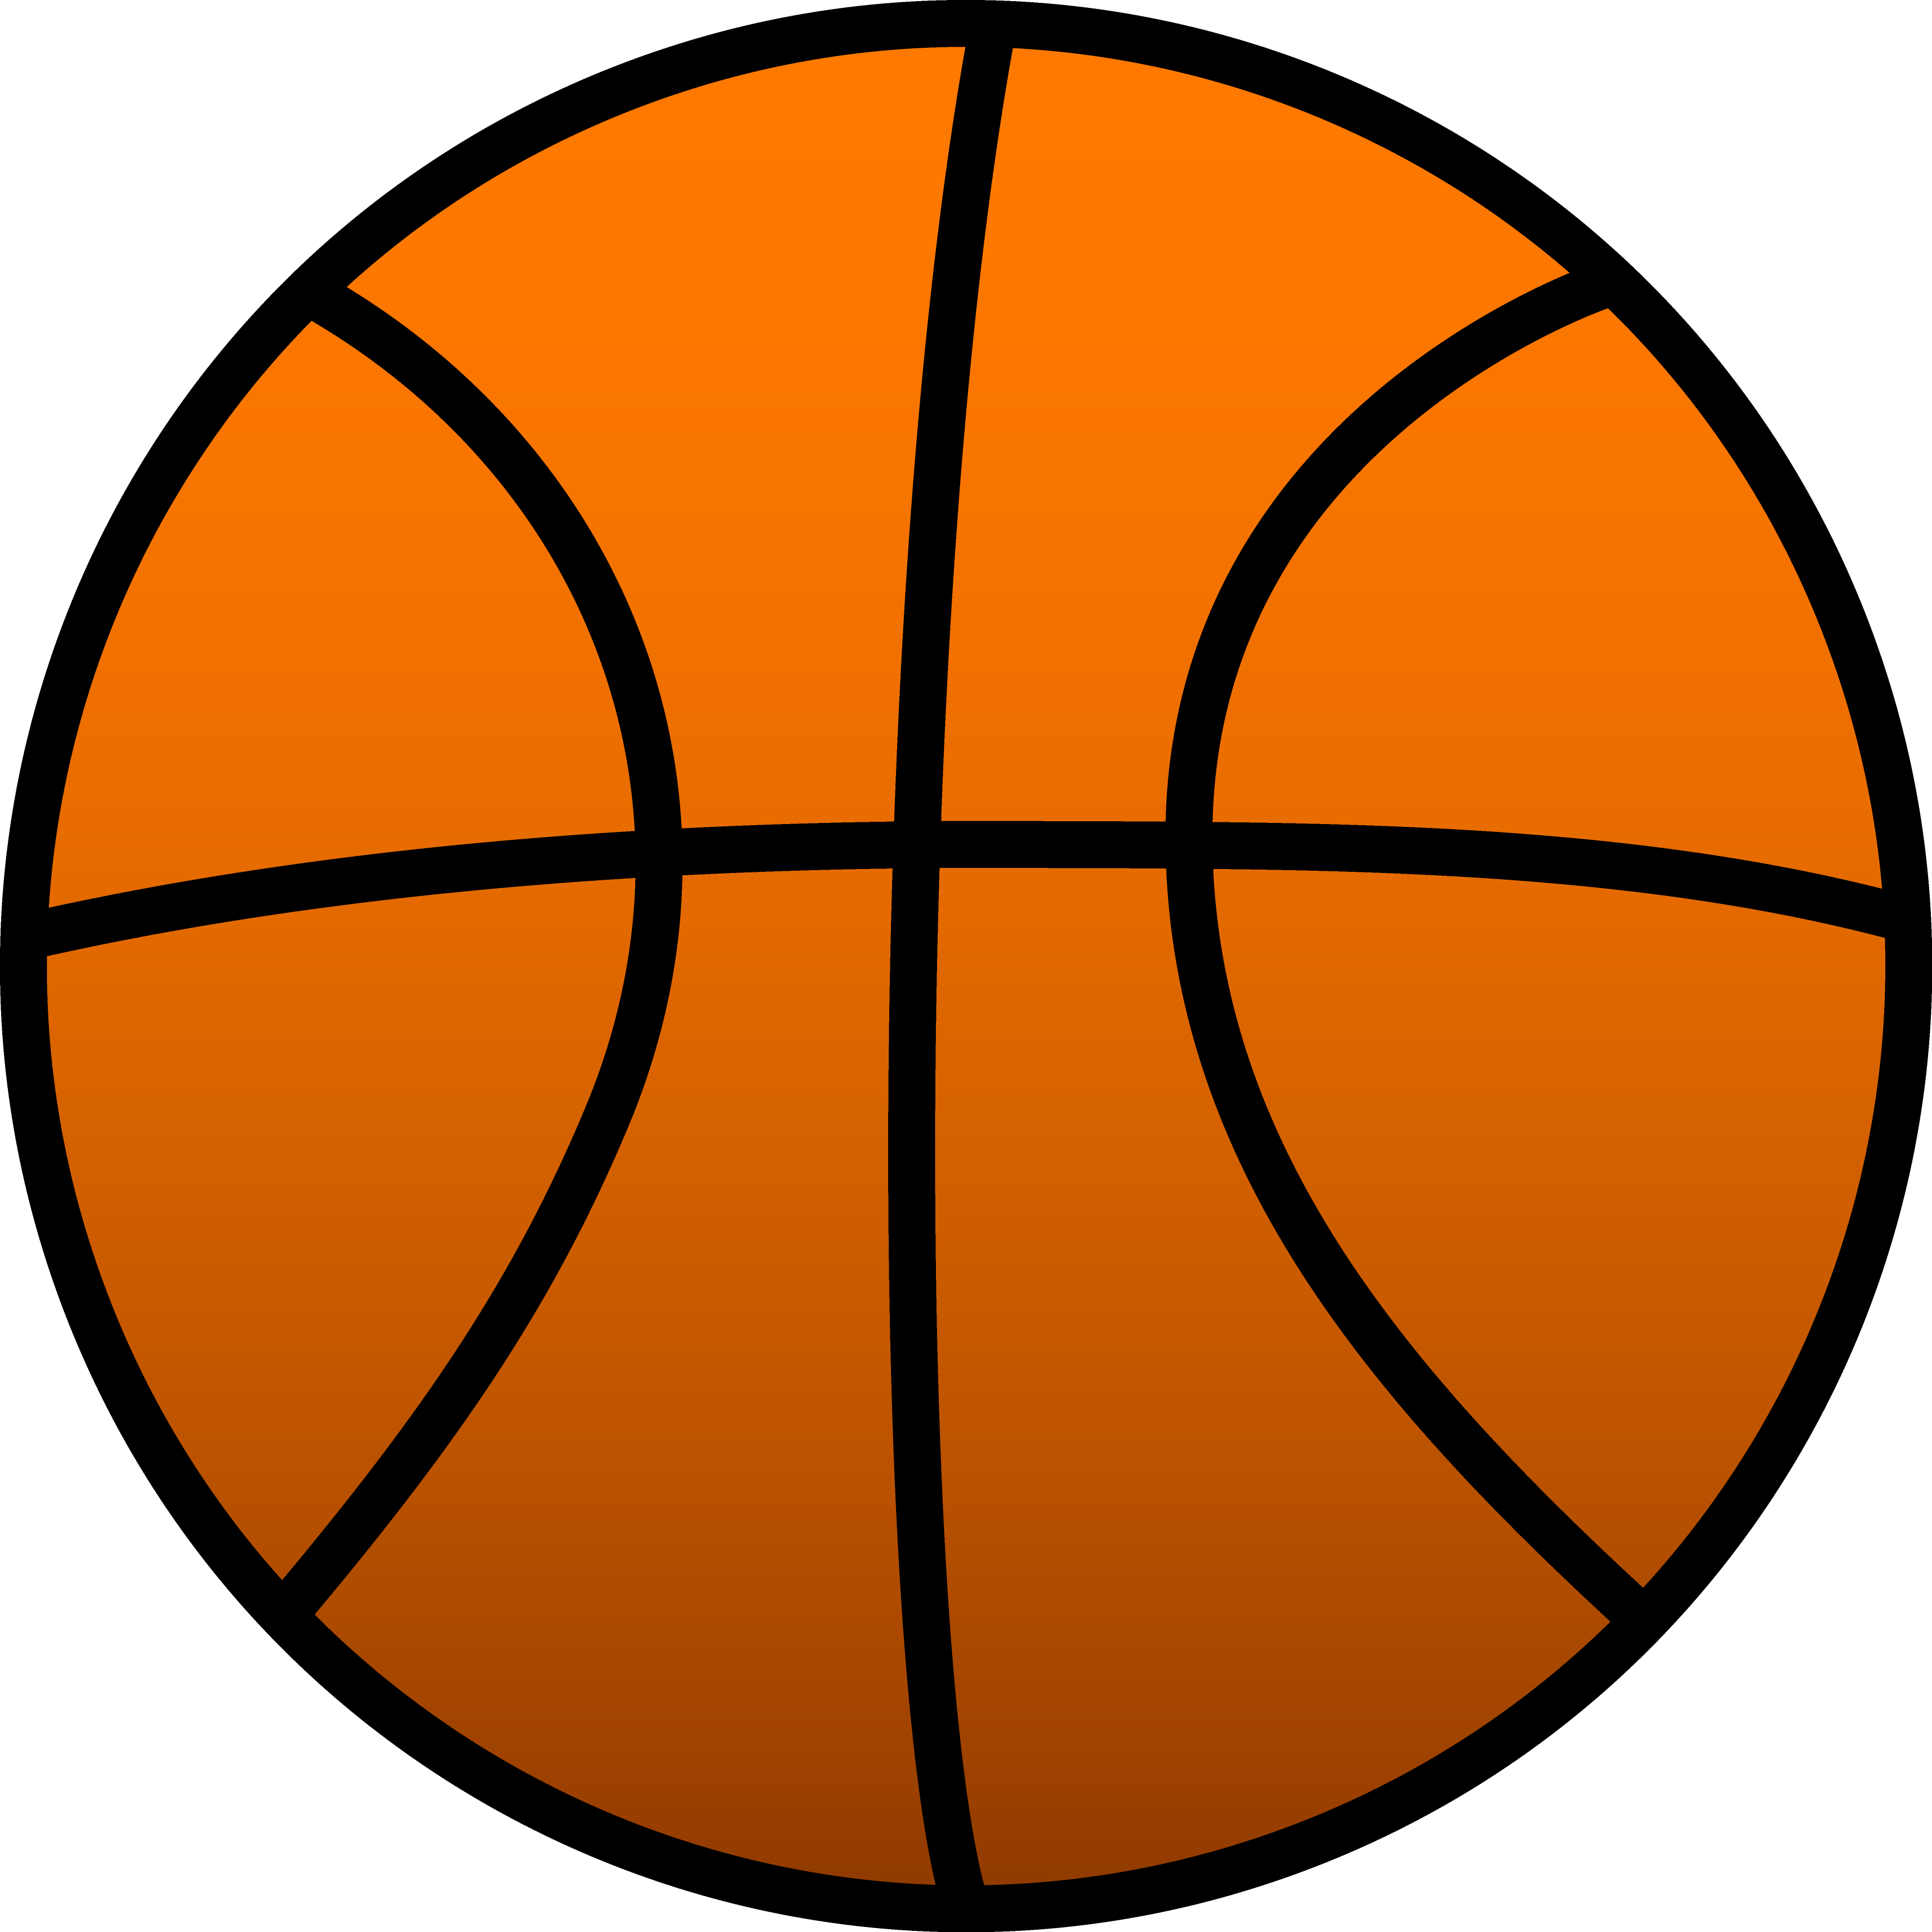 3437x3437 Basketball Clipart Free Images 2